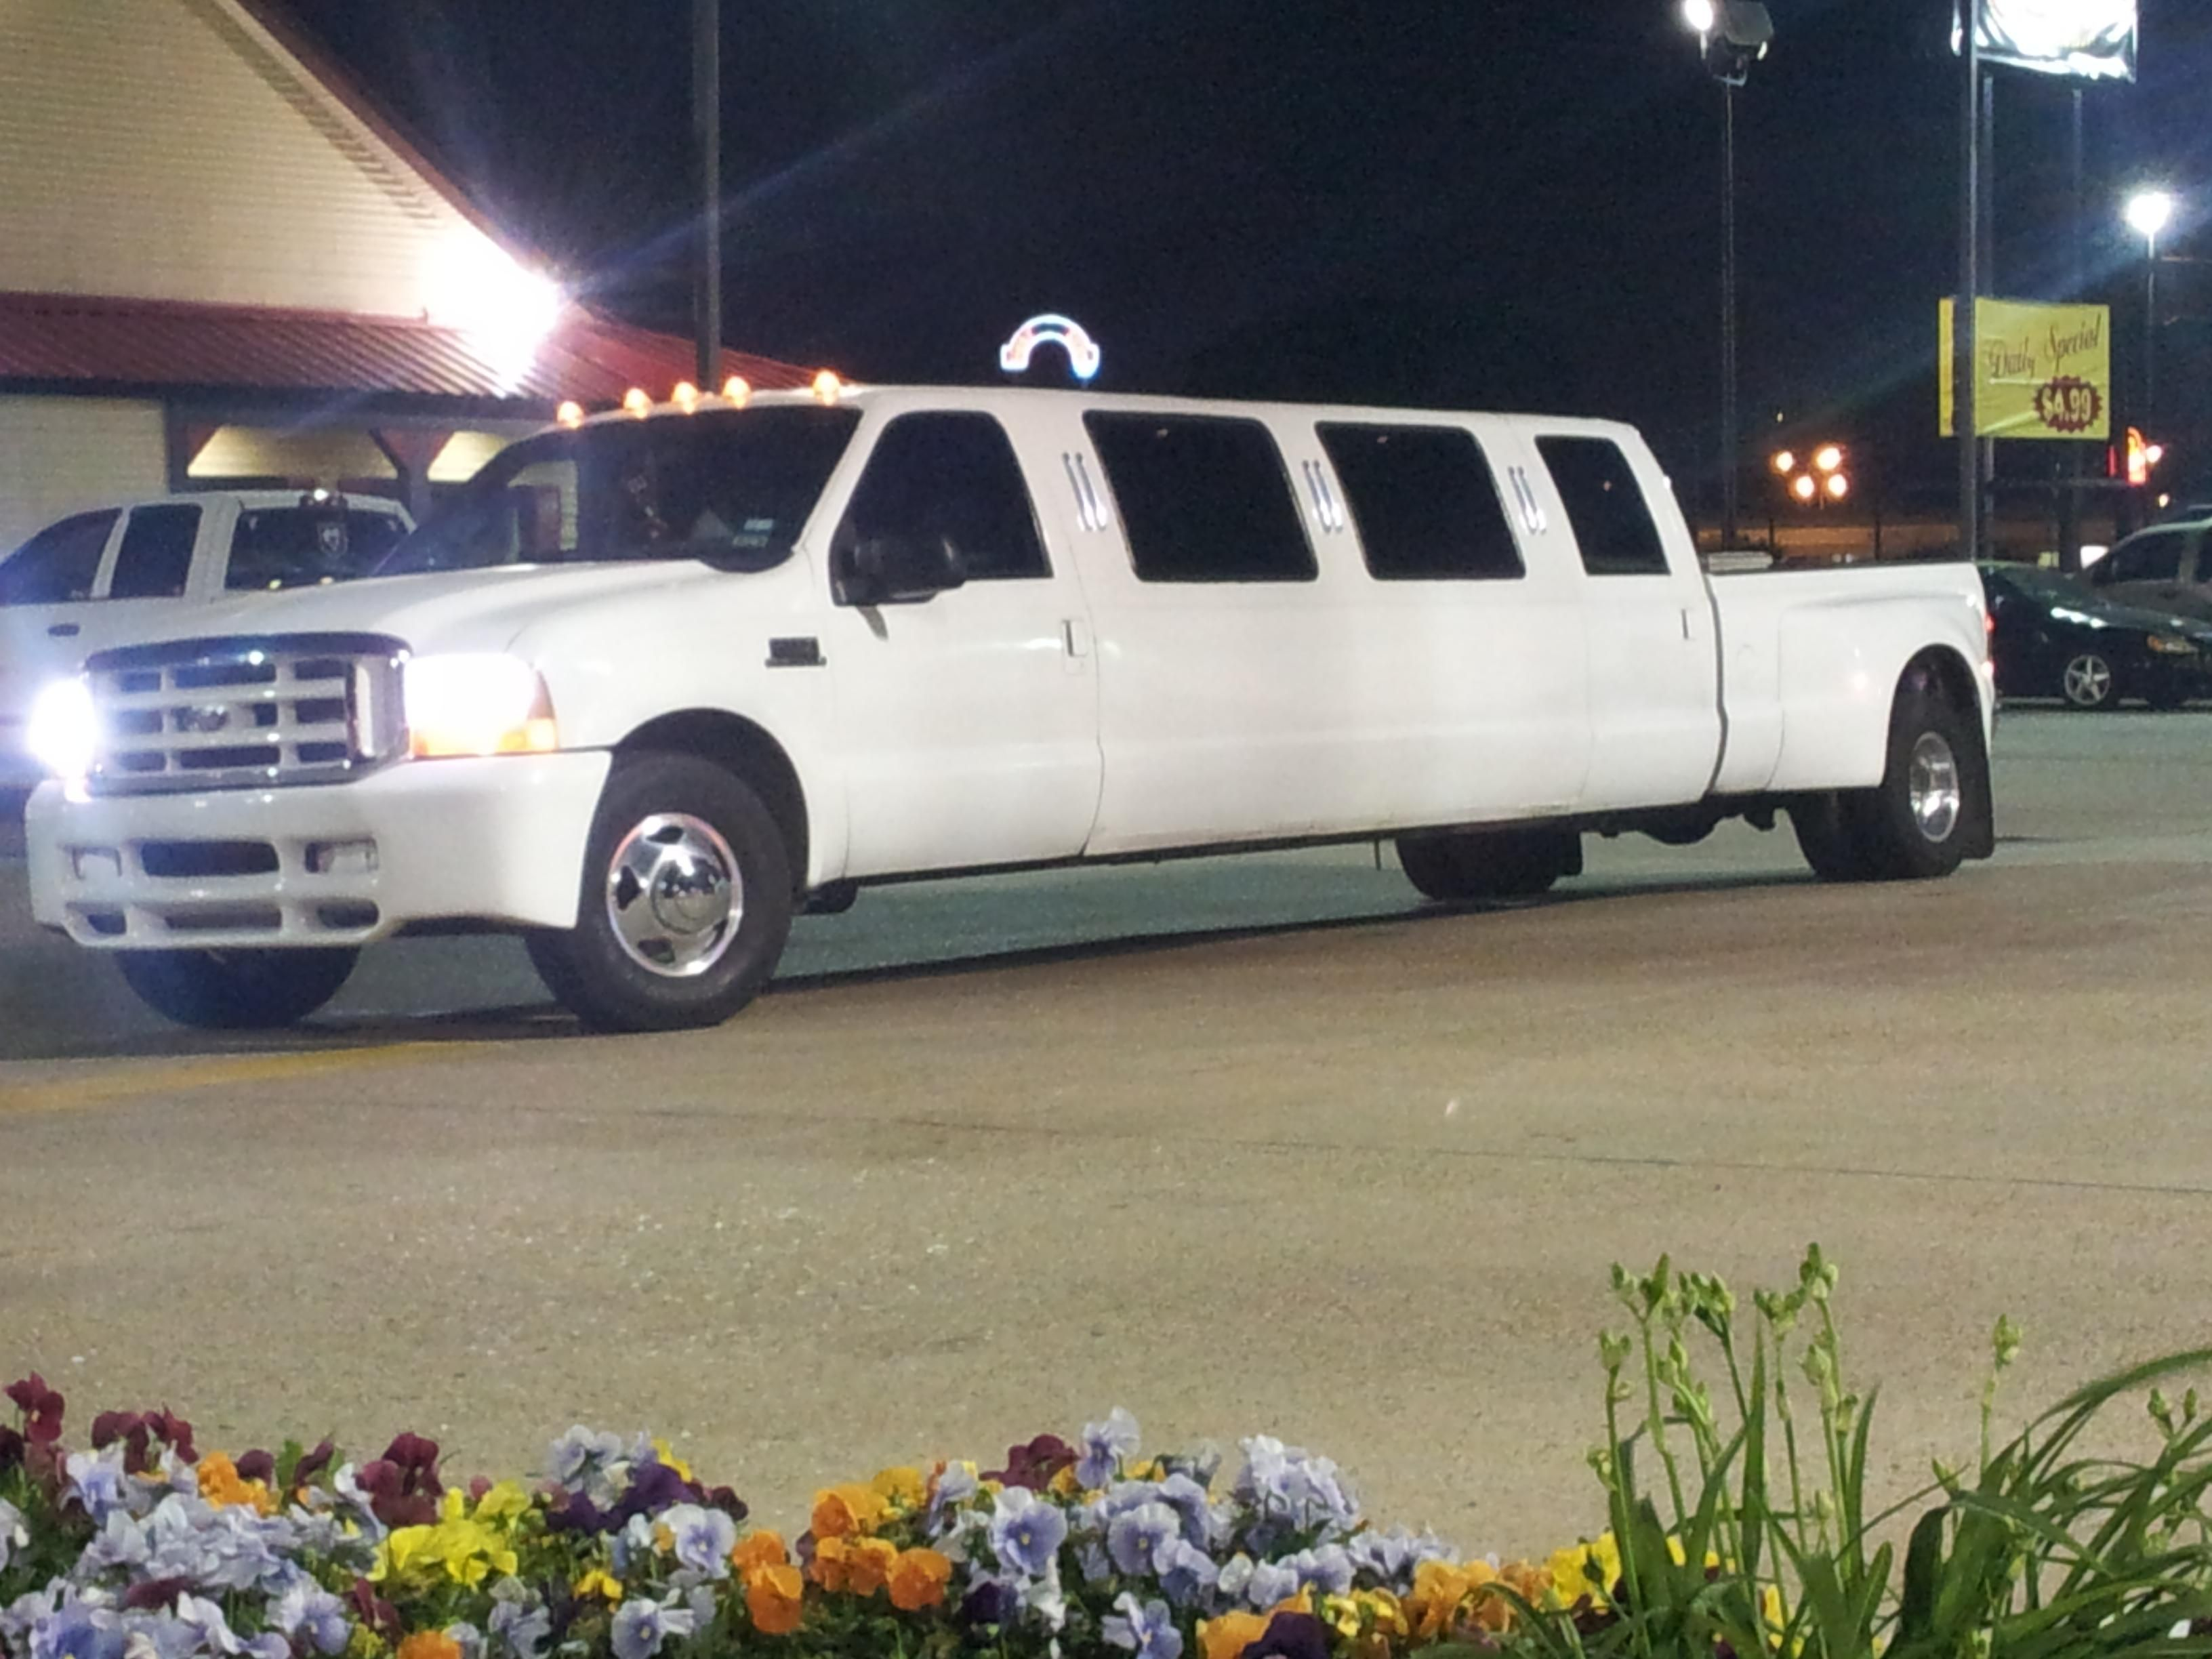 Blessed limo provides 247 excellent affordable and